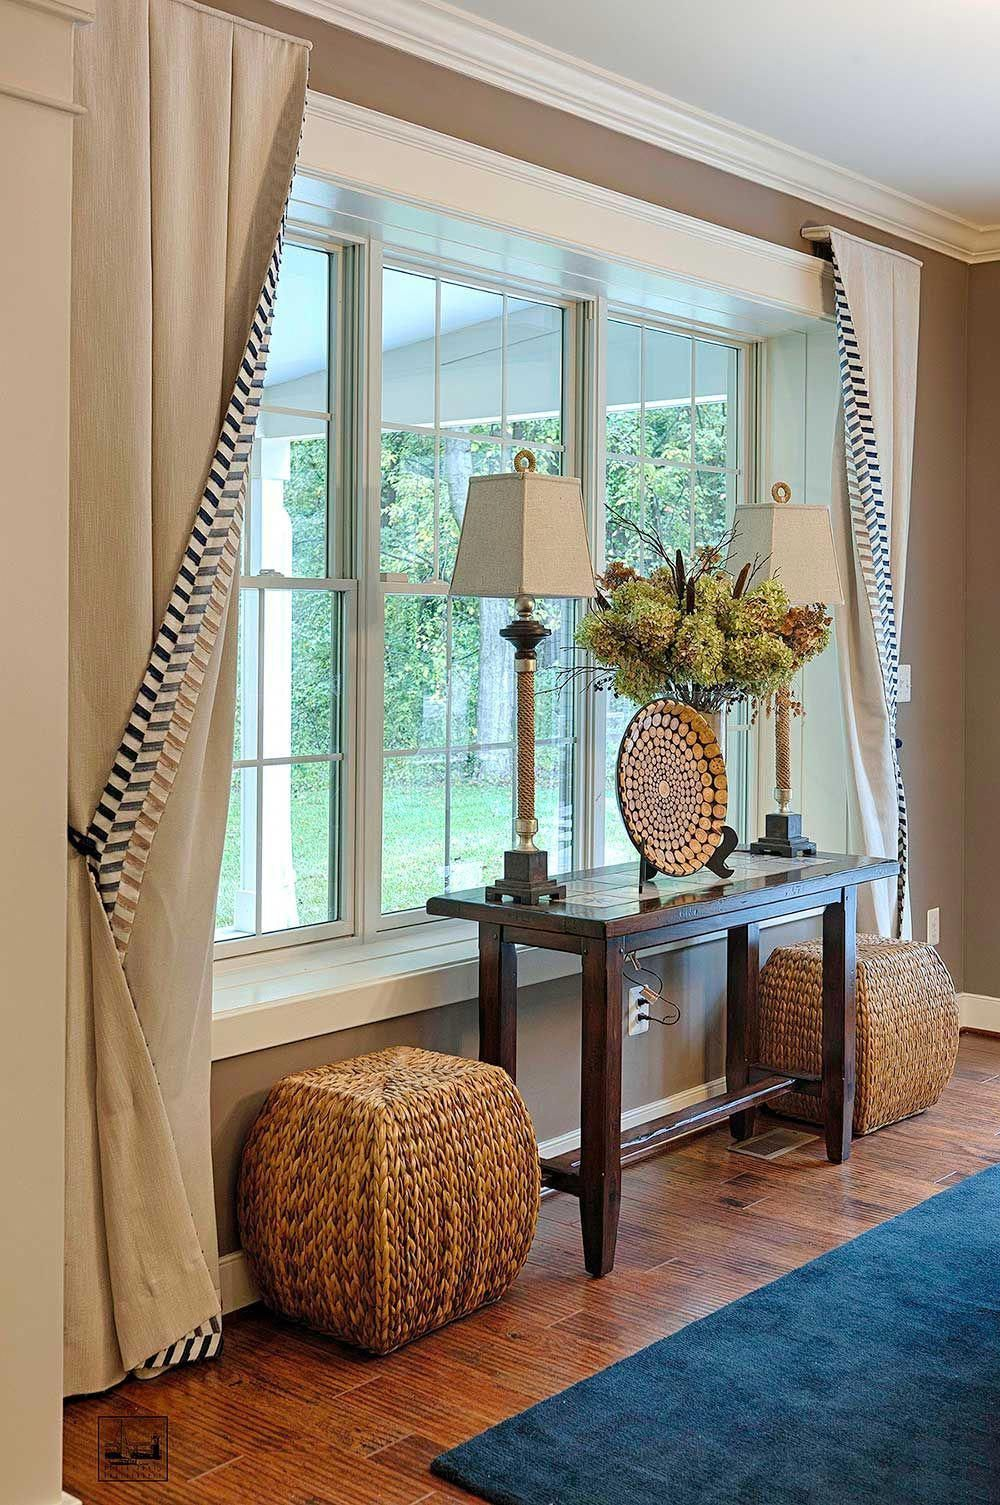 small bay window living room modern contemporary bay window curtains diy bedroom decor small interior the most impressive window in the house deserves fabulous curtains and